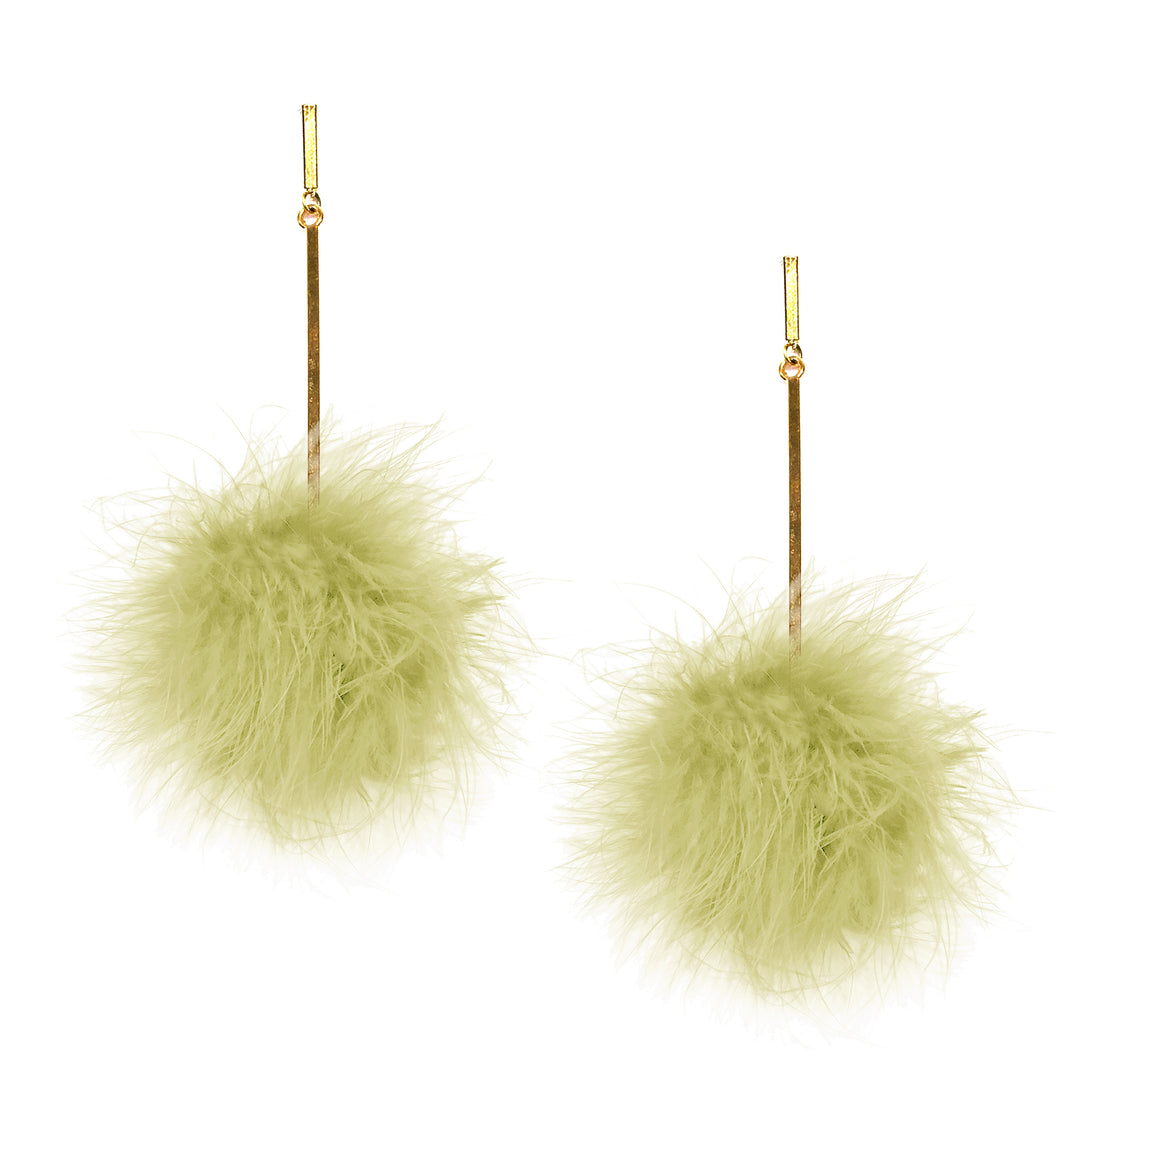 Chartreuse Marabou Pom Pom Earrings, Earrings, Tuleste, Tuleste